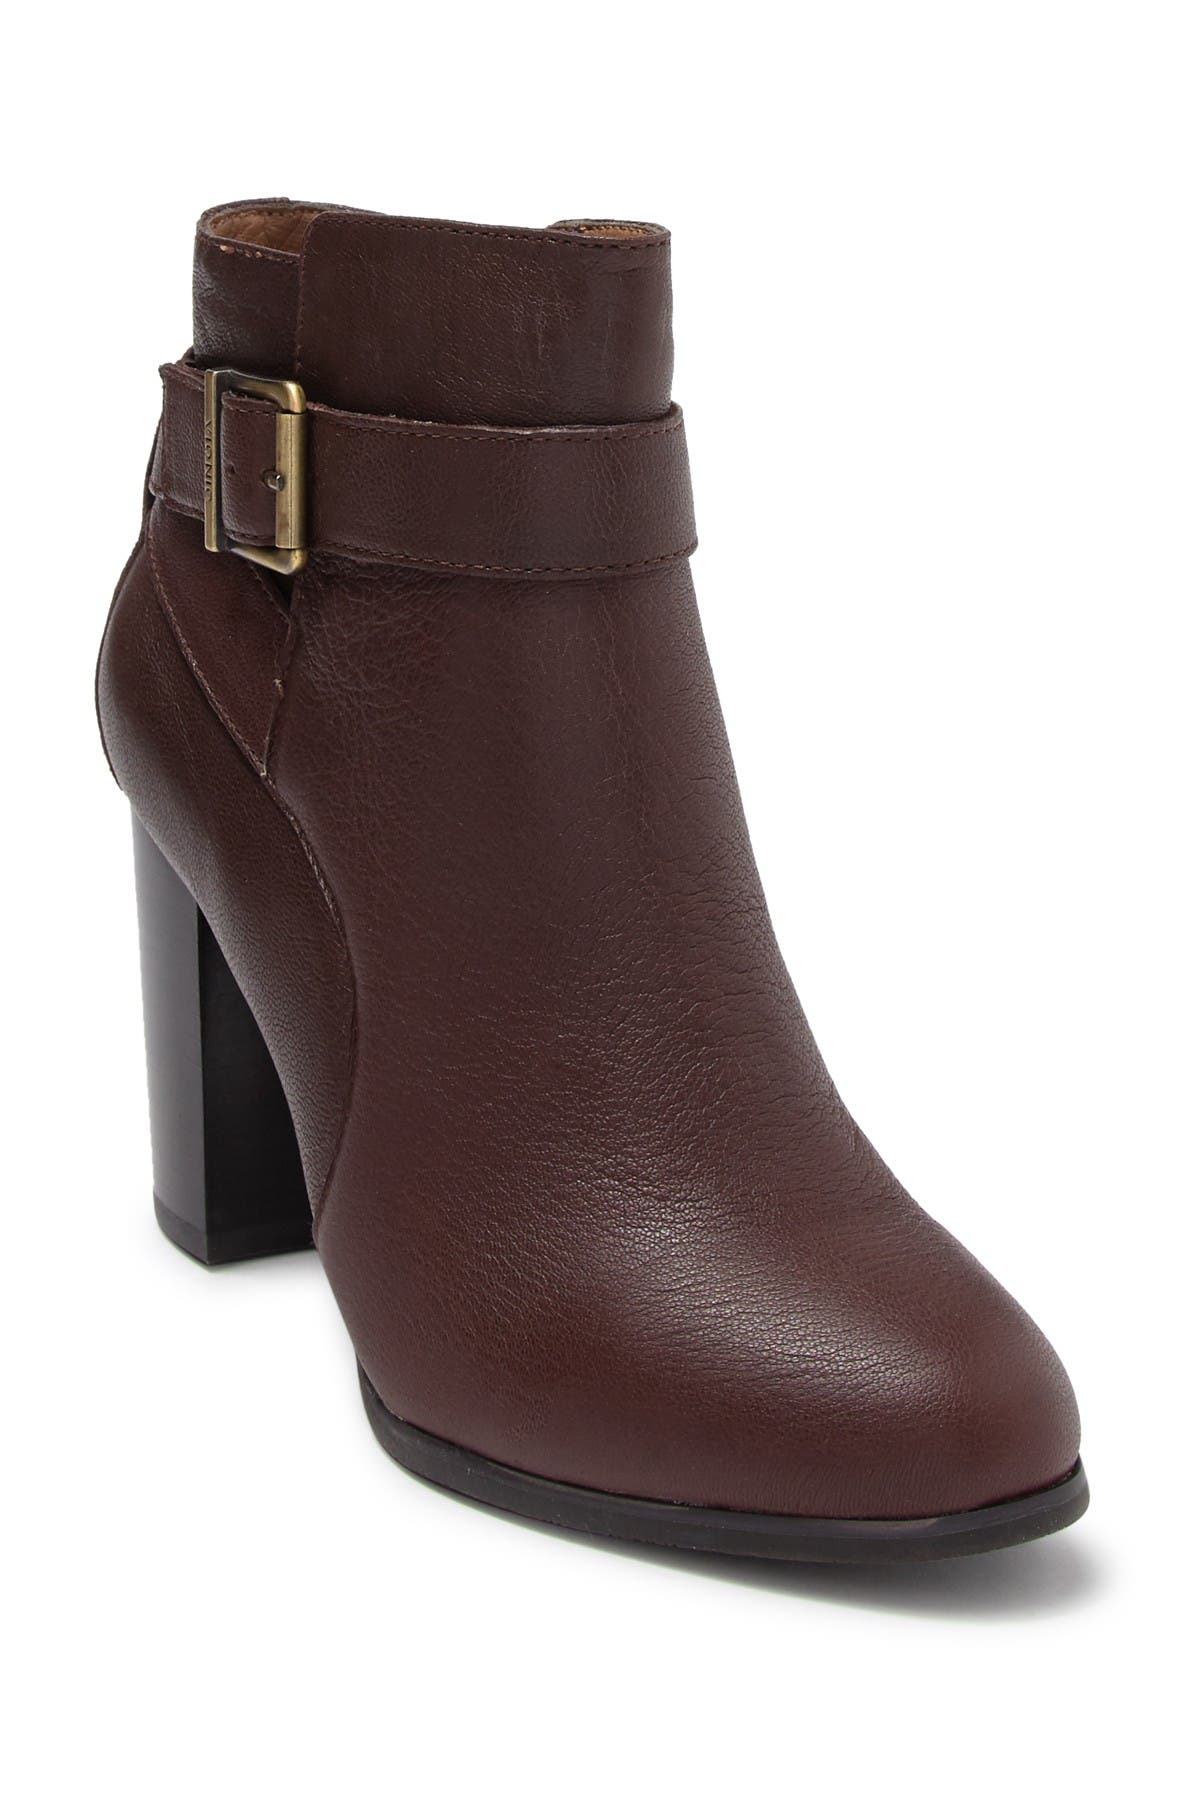 Image of Vionic Allison Leather Ankle Boot